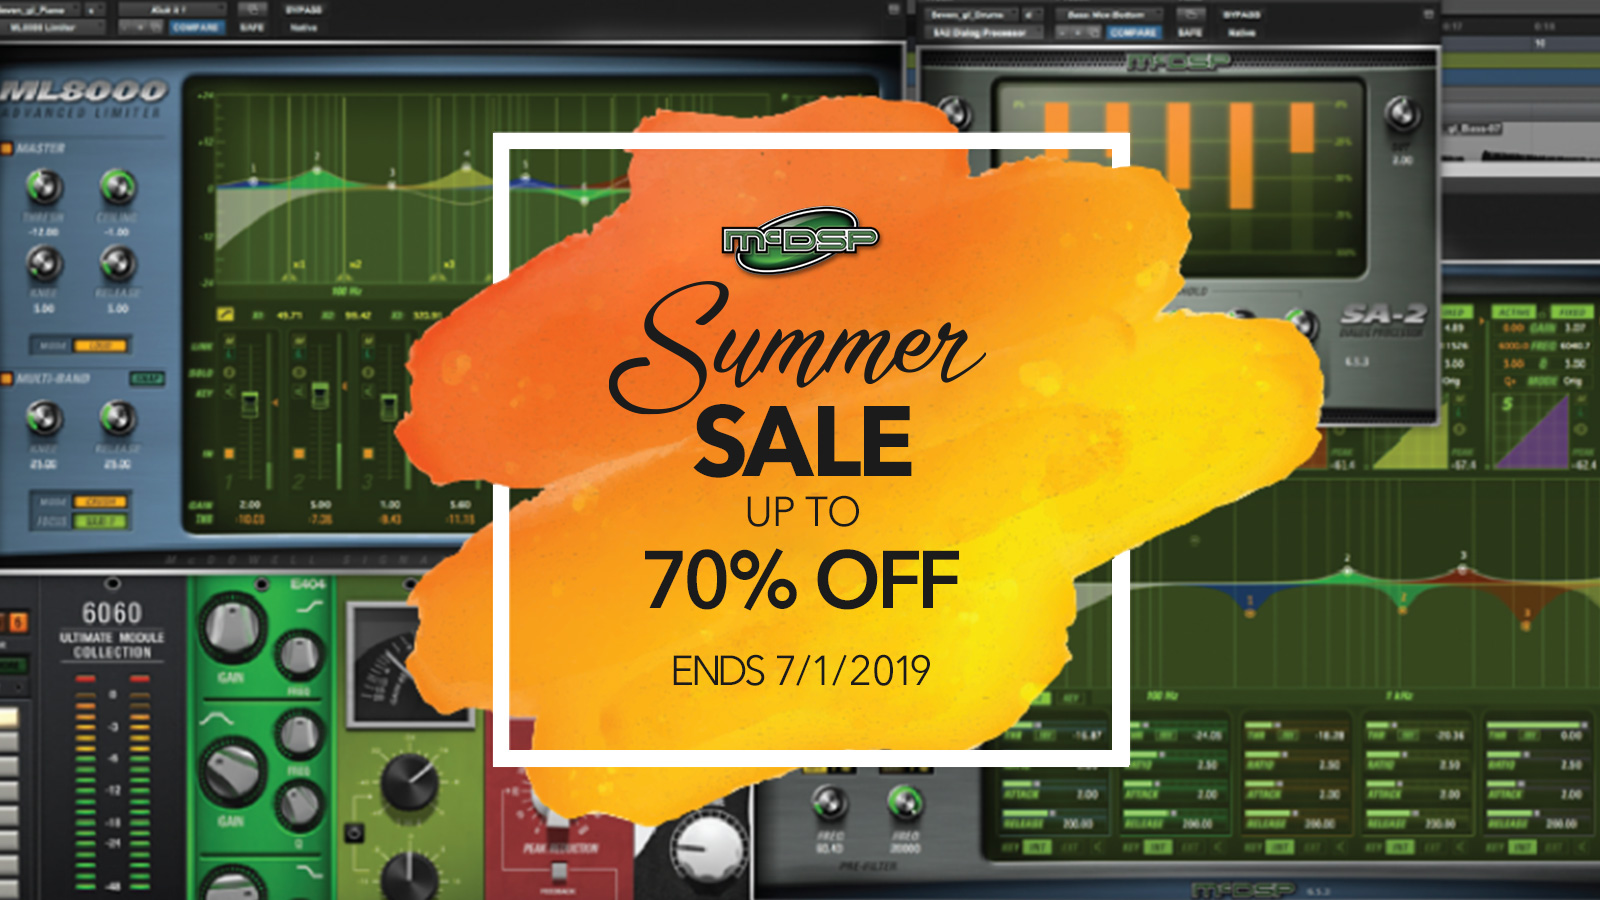 McDSP Summer Sale – up to 70% OFF